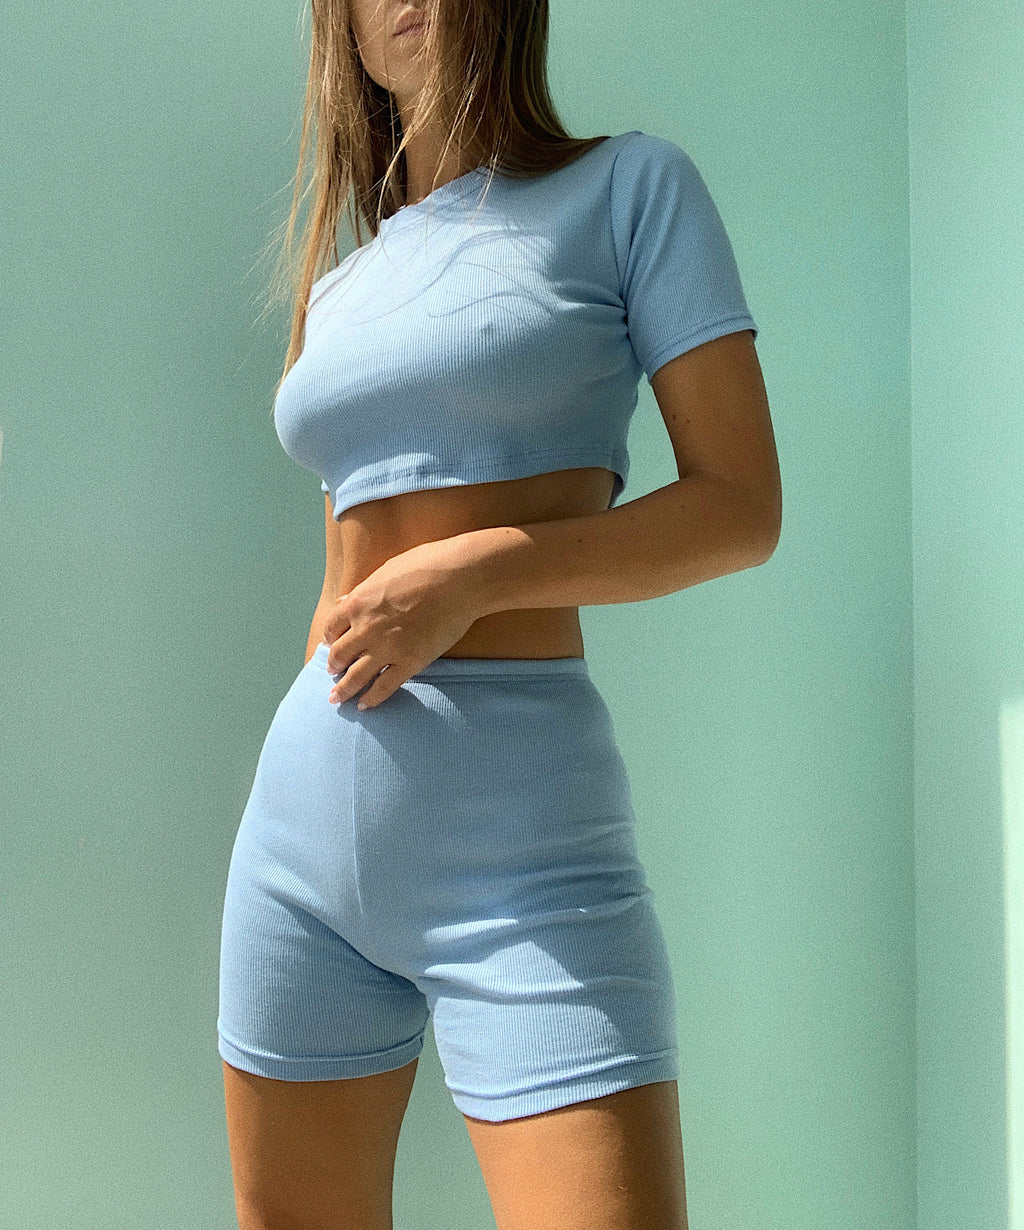 Knitted set (short high waist shorts and crop top) - Okiya Studio | Sleepwear, Homewear, Lingerie, Home Textiles